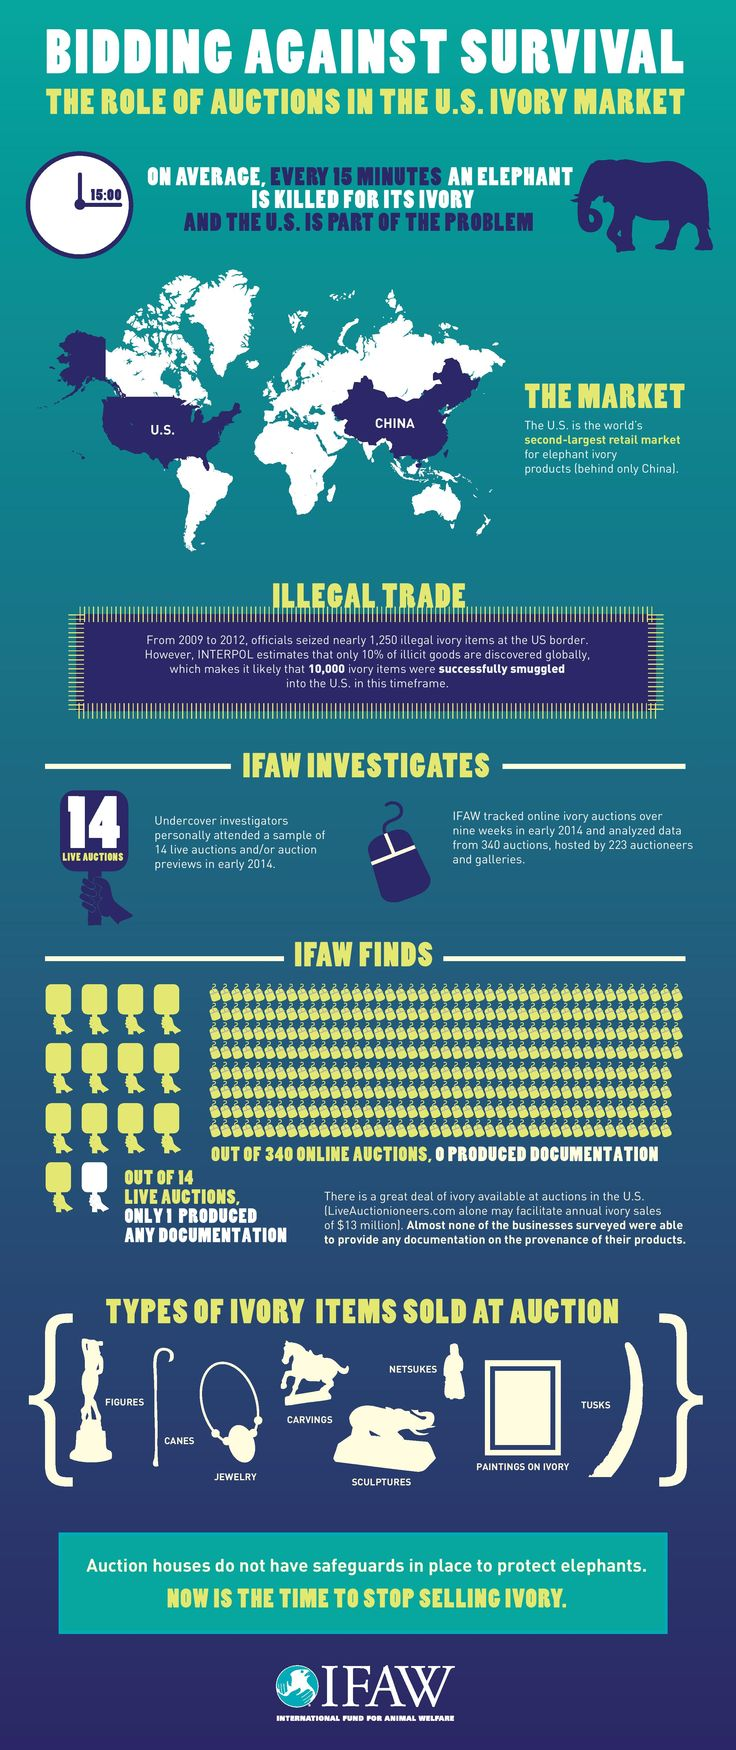 New IFAW Infographic Reveals How Auctions in the U.S. Contribute to the Illegal Ivory Trade